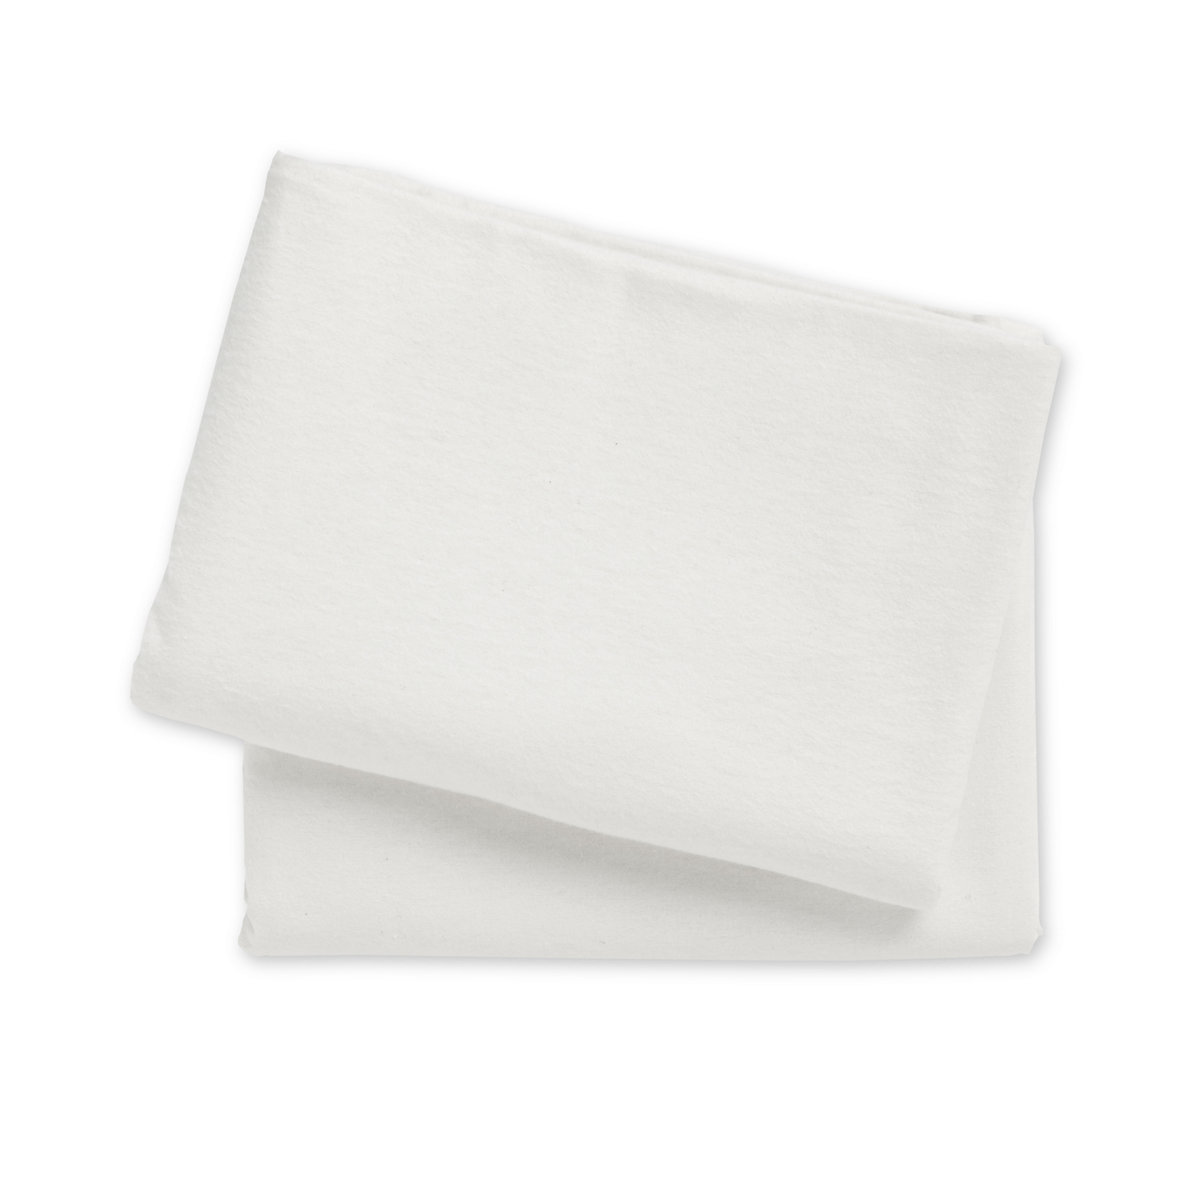 'Mothercare Flannelette Crib Or Moses Basket Flat Sheets - 2 Pack White